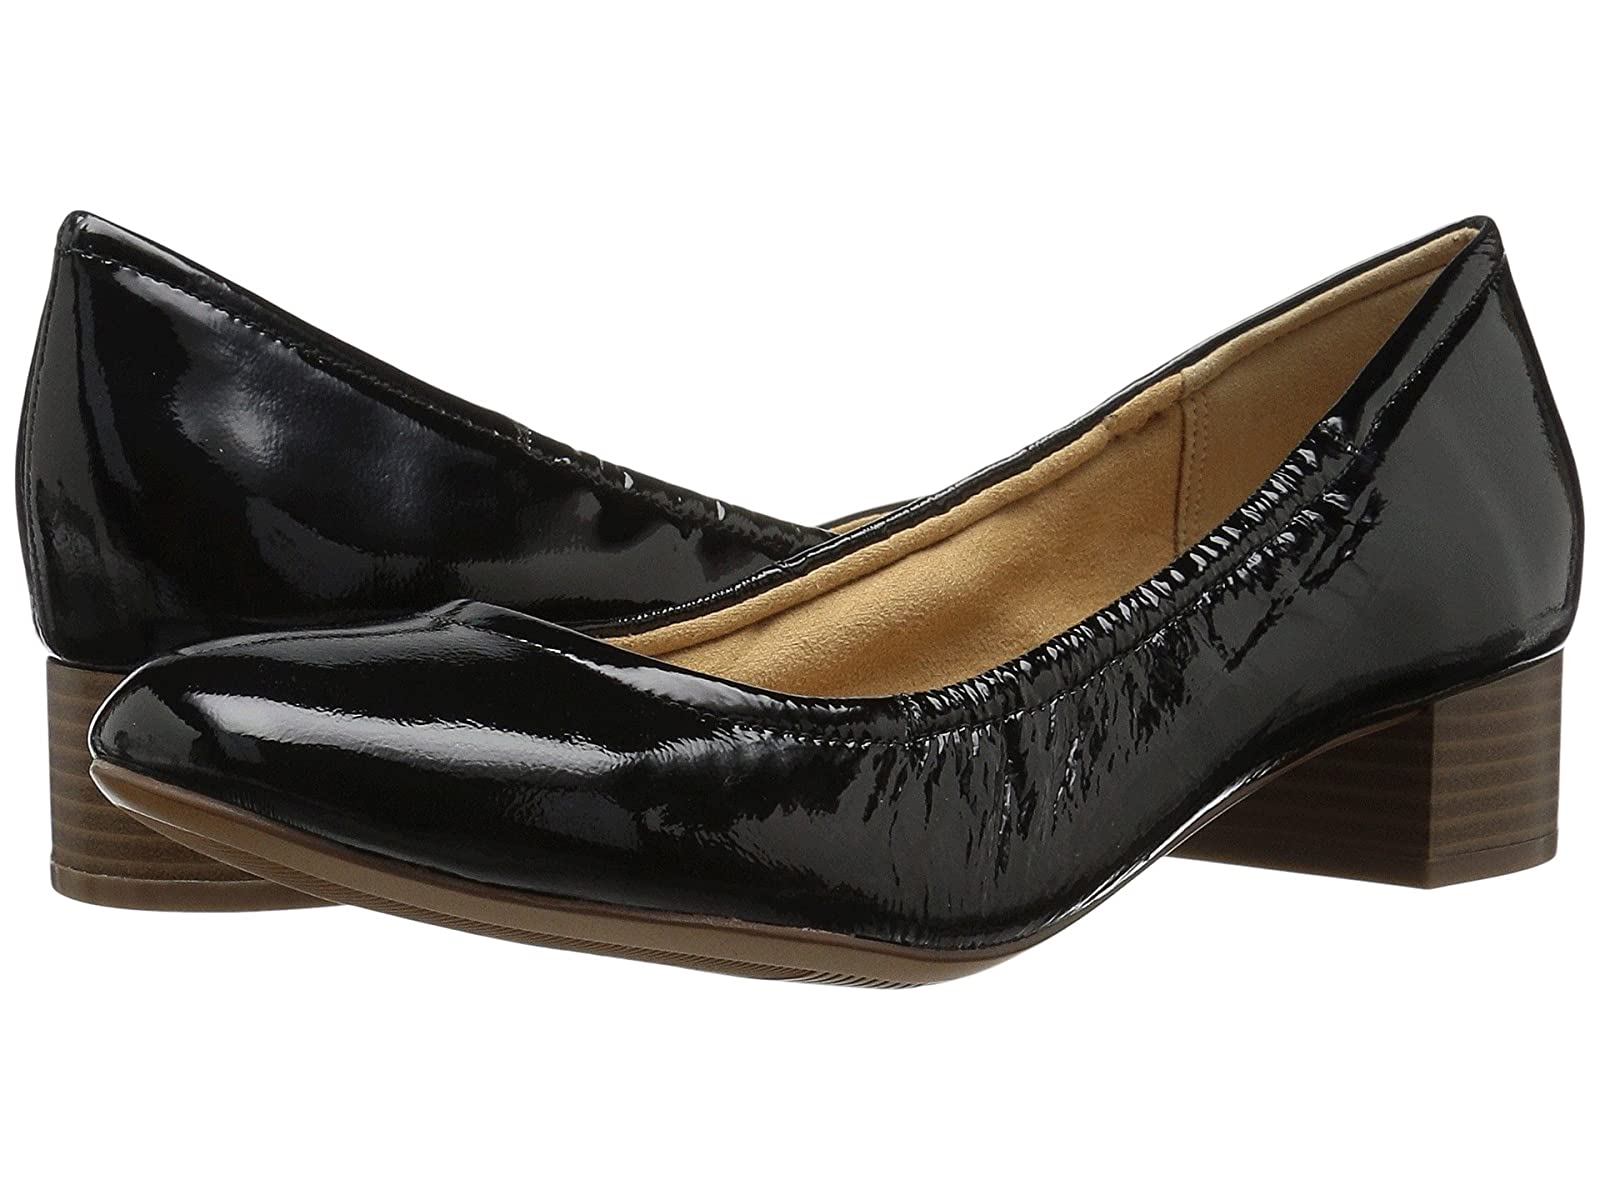 Naturalizer AdelineCheap and distinctive eye-catching shoes